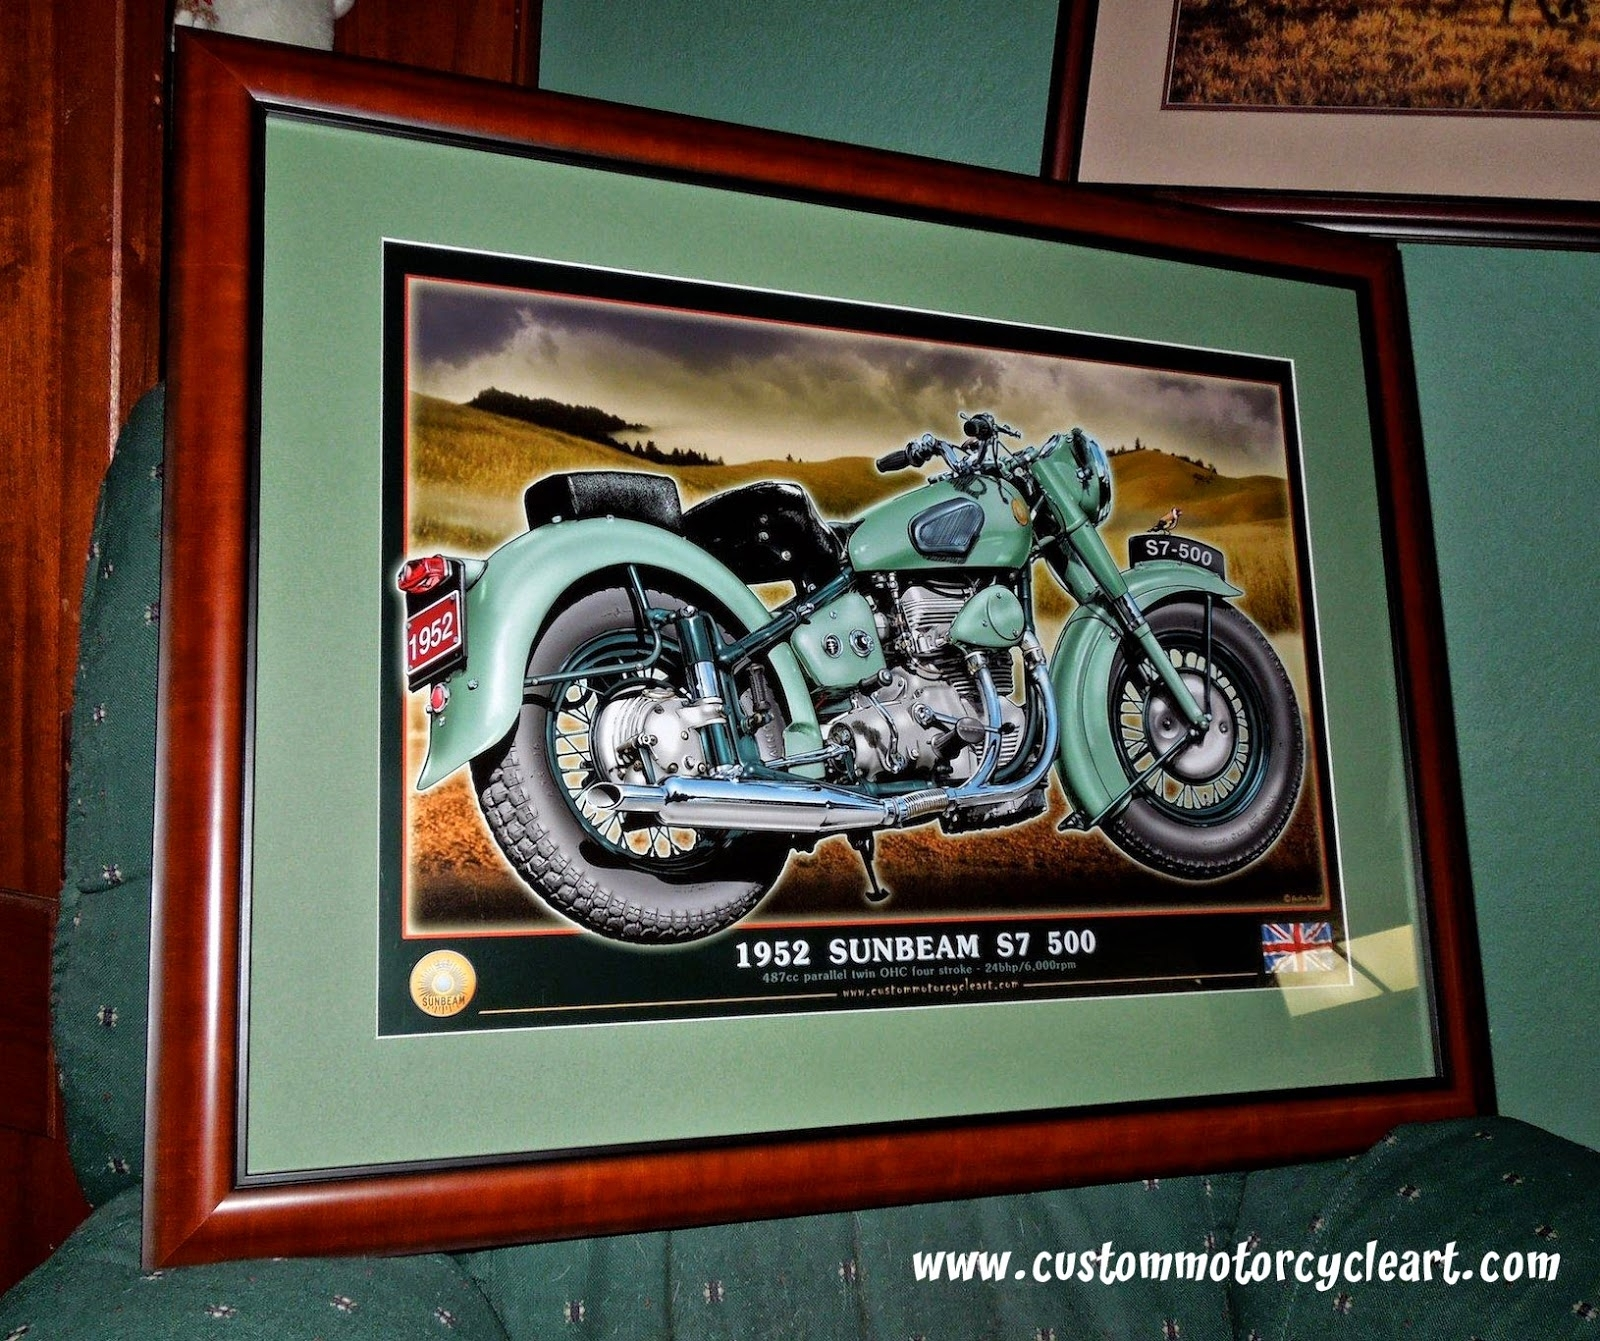 Www.custommotorcycleart: Motorcycle Art Print Framed (View 15 of 15)